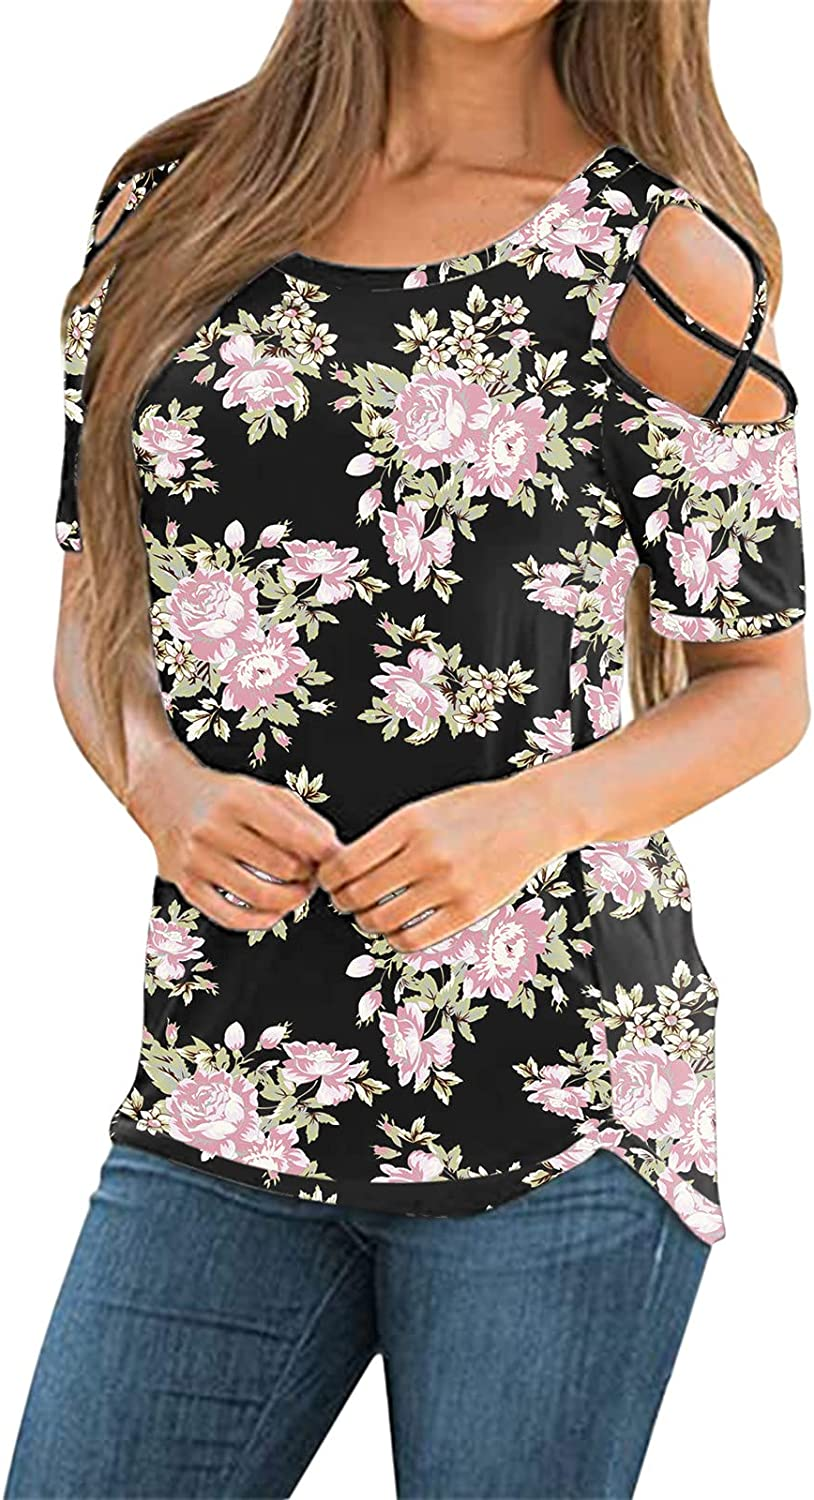 Womens Summer Tops,Womens Strappy Cold Shoulder Tops Summer Short Sleeve Round Neck Loose Casual Tee T-Shirt Black